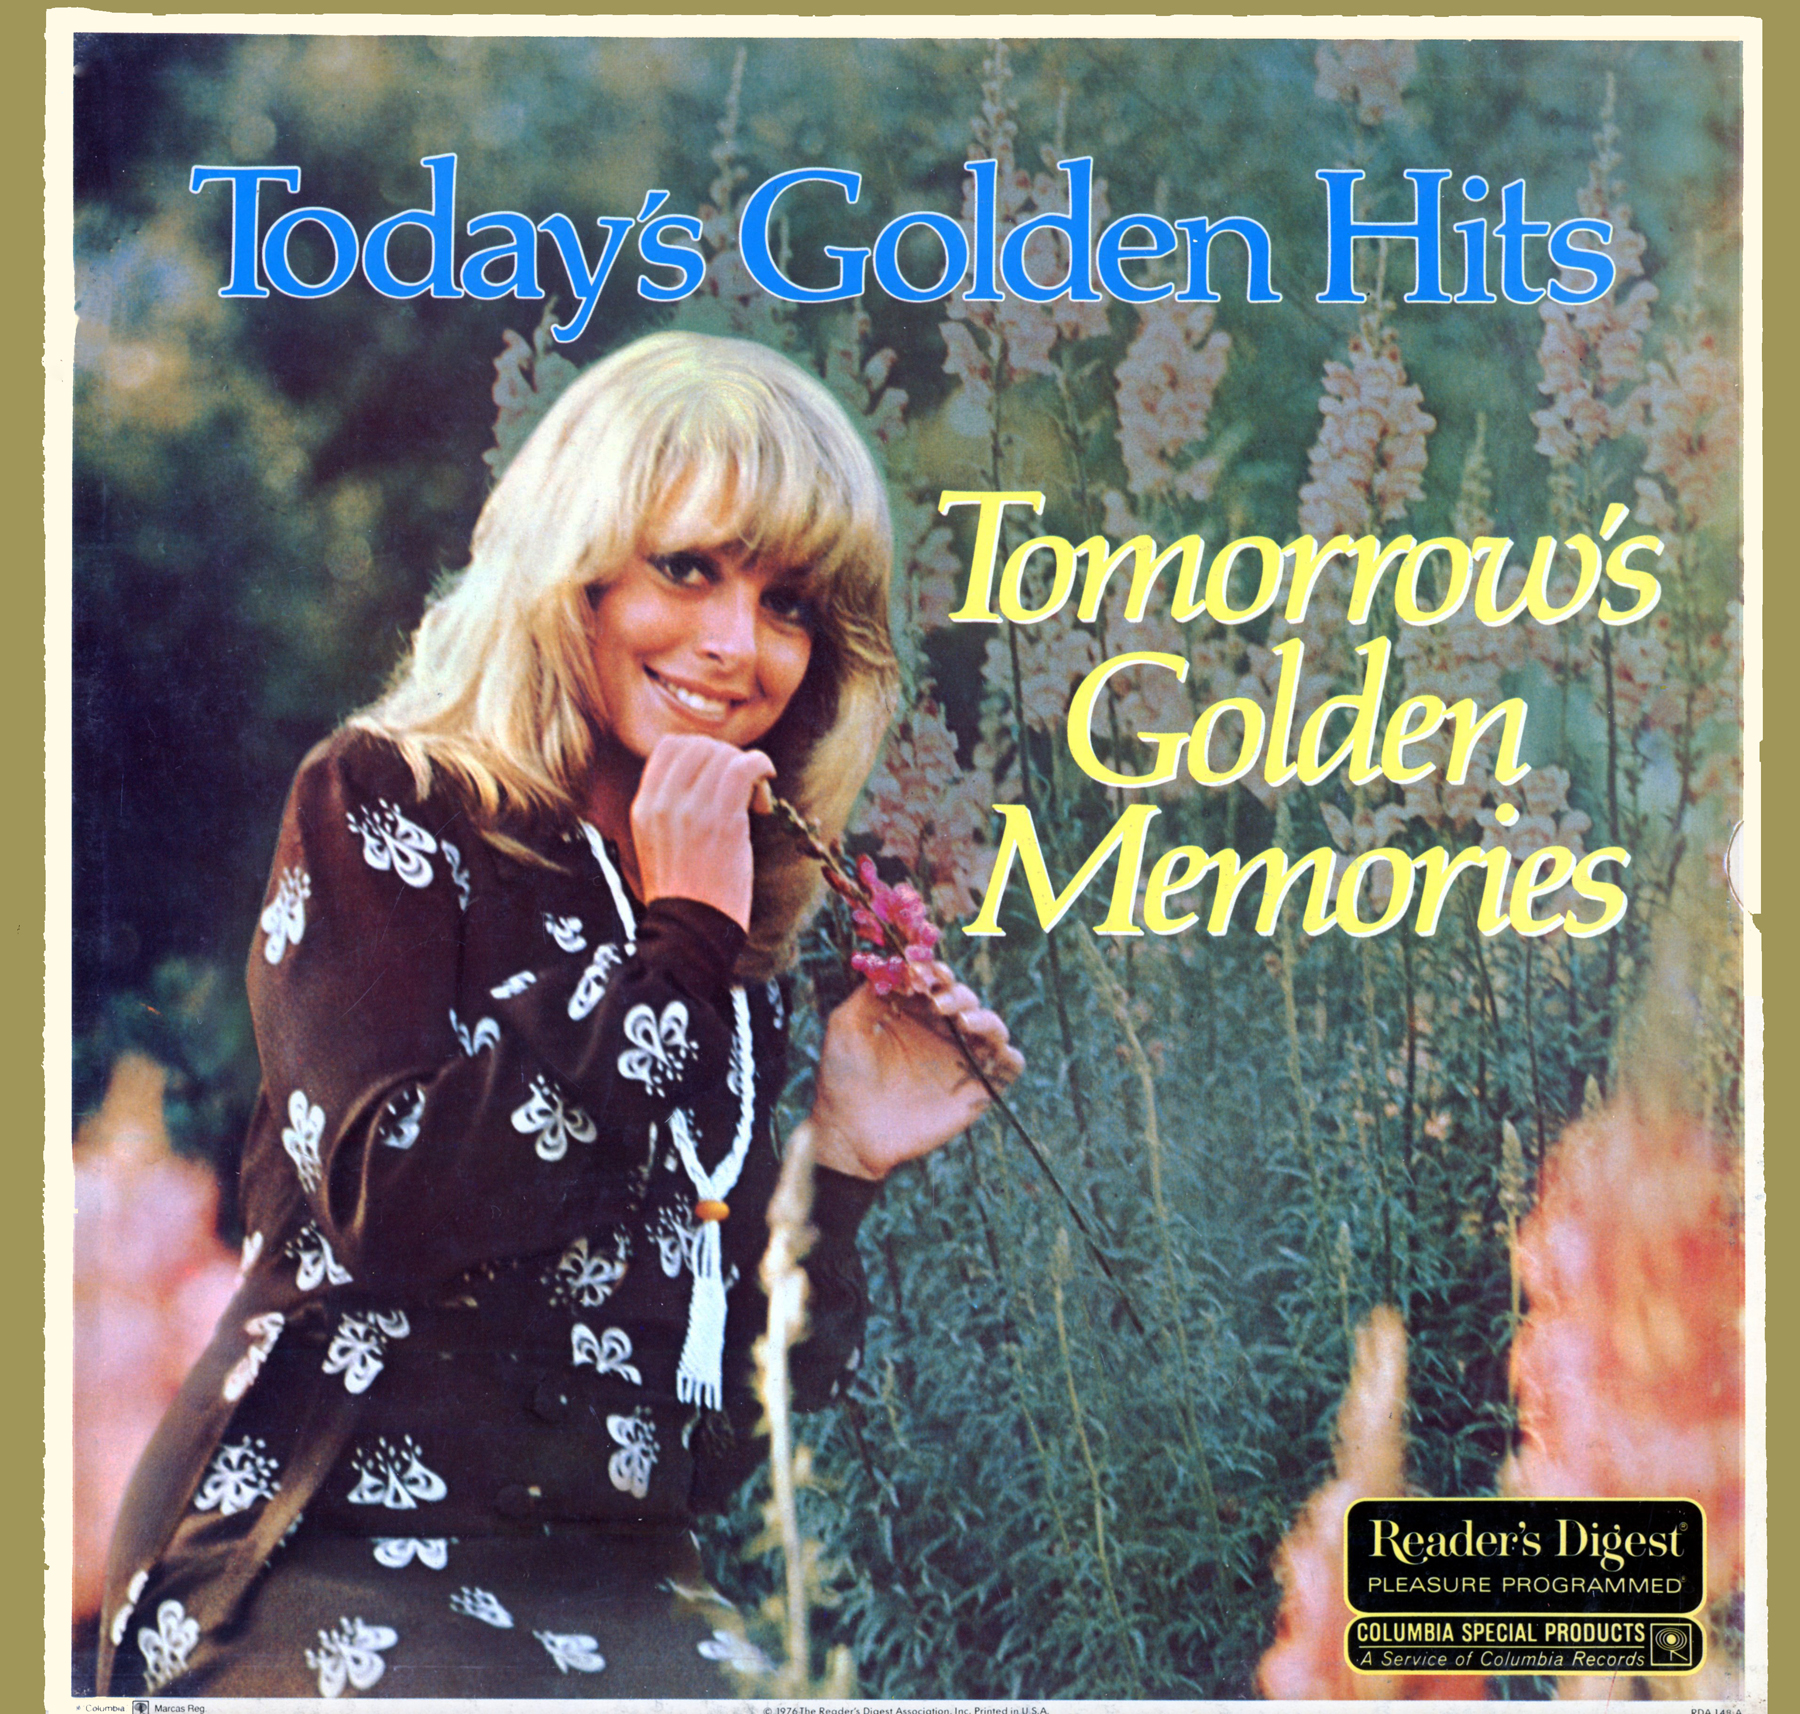 RDA148 - Today's Golden Hits - Tomorrows Golden Memories on CD